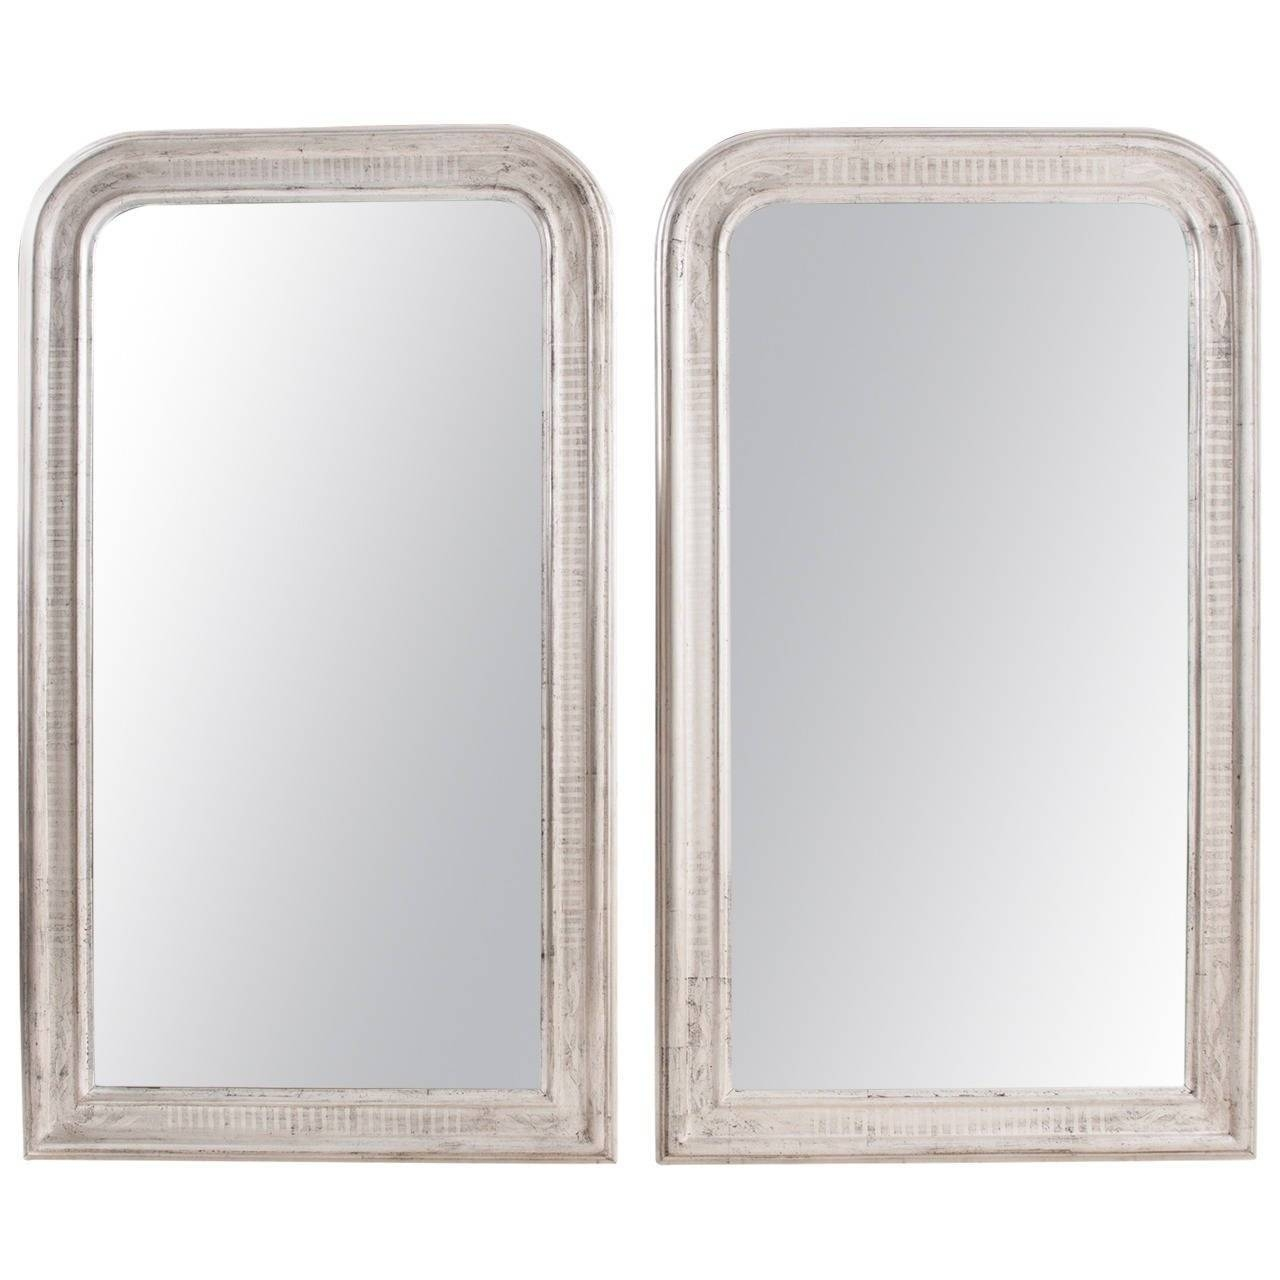 Mirror : Id F Stunning Silver Gilded Mirror Pair Of French 19Th Within Silver Gilded Mirrors (View 8 of 15)